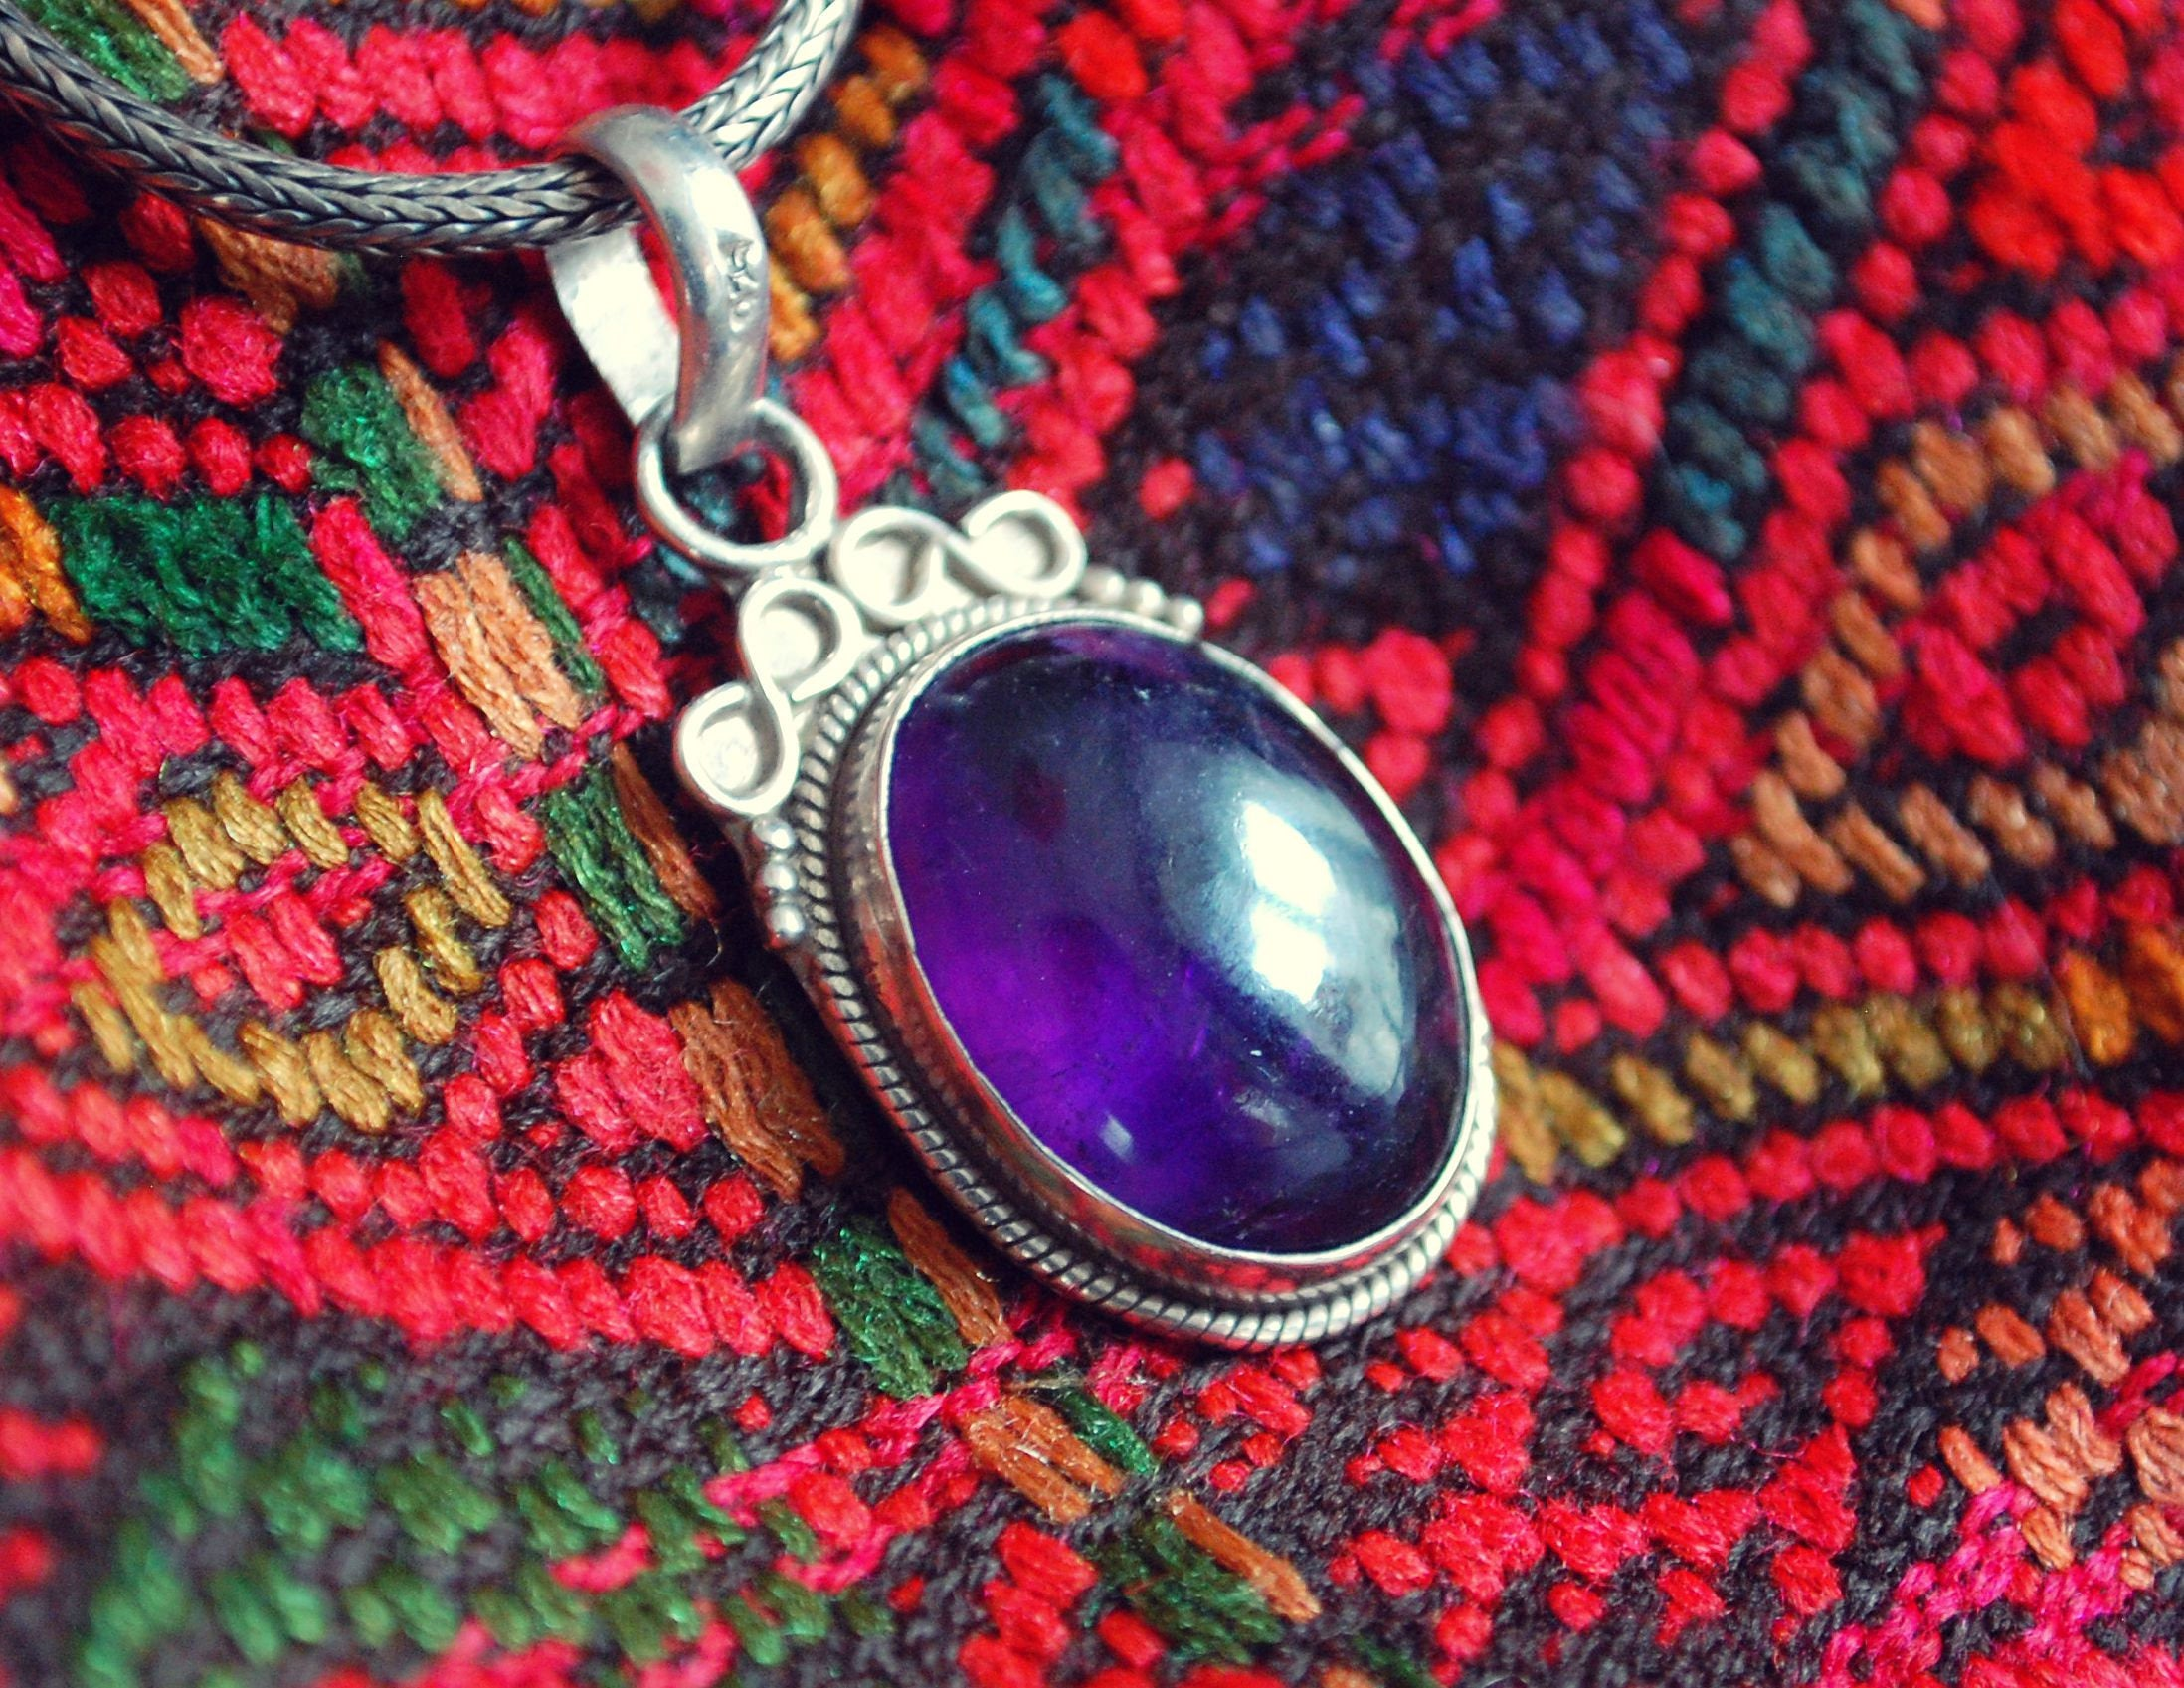 Amethyst Pendant from India - India Amethyst Sterling Silver Pendant - Amethyst Jewelry